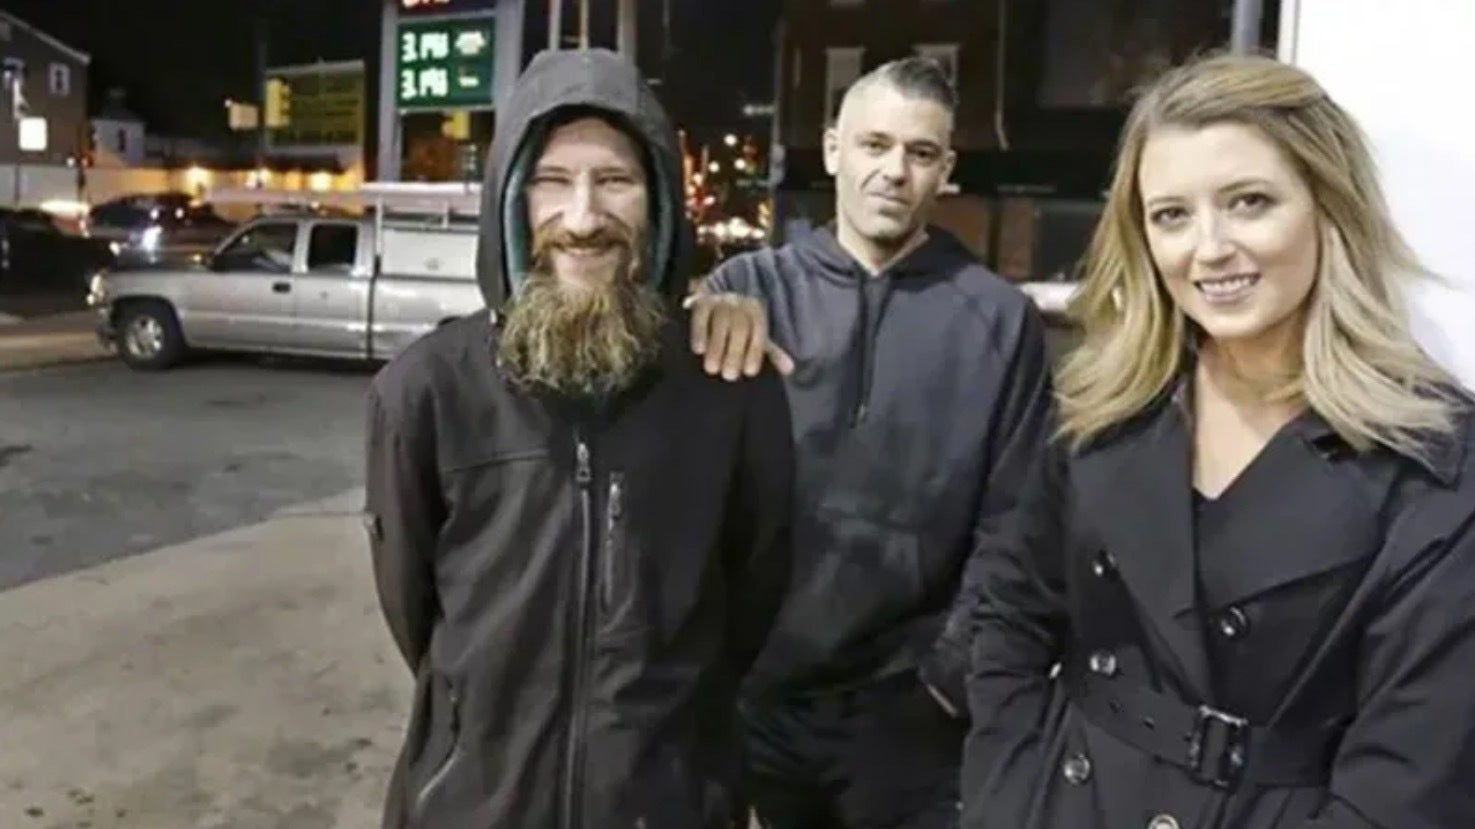 GoFundMe Issues Refunds To Donors Of Alleged Scam Involving Couple And Homeless Man